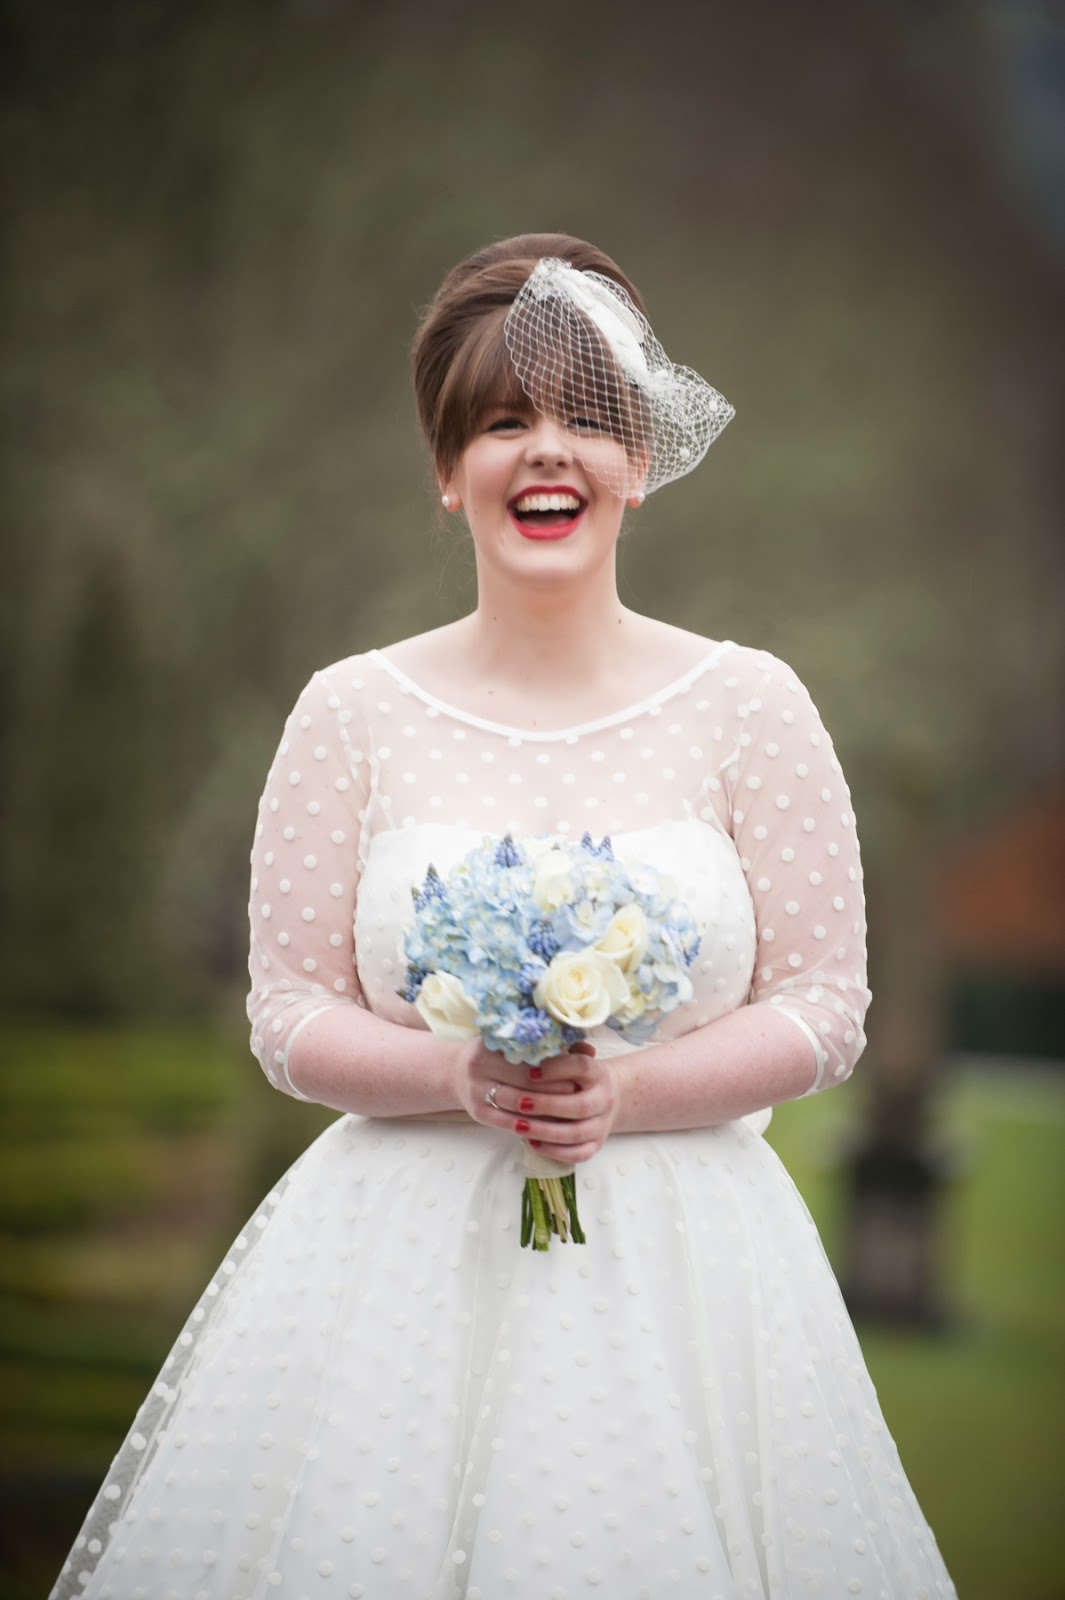 Bride in fifties style shorter length dress with polka dots holding bouquet of blue flowers